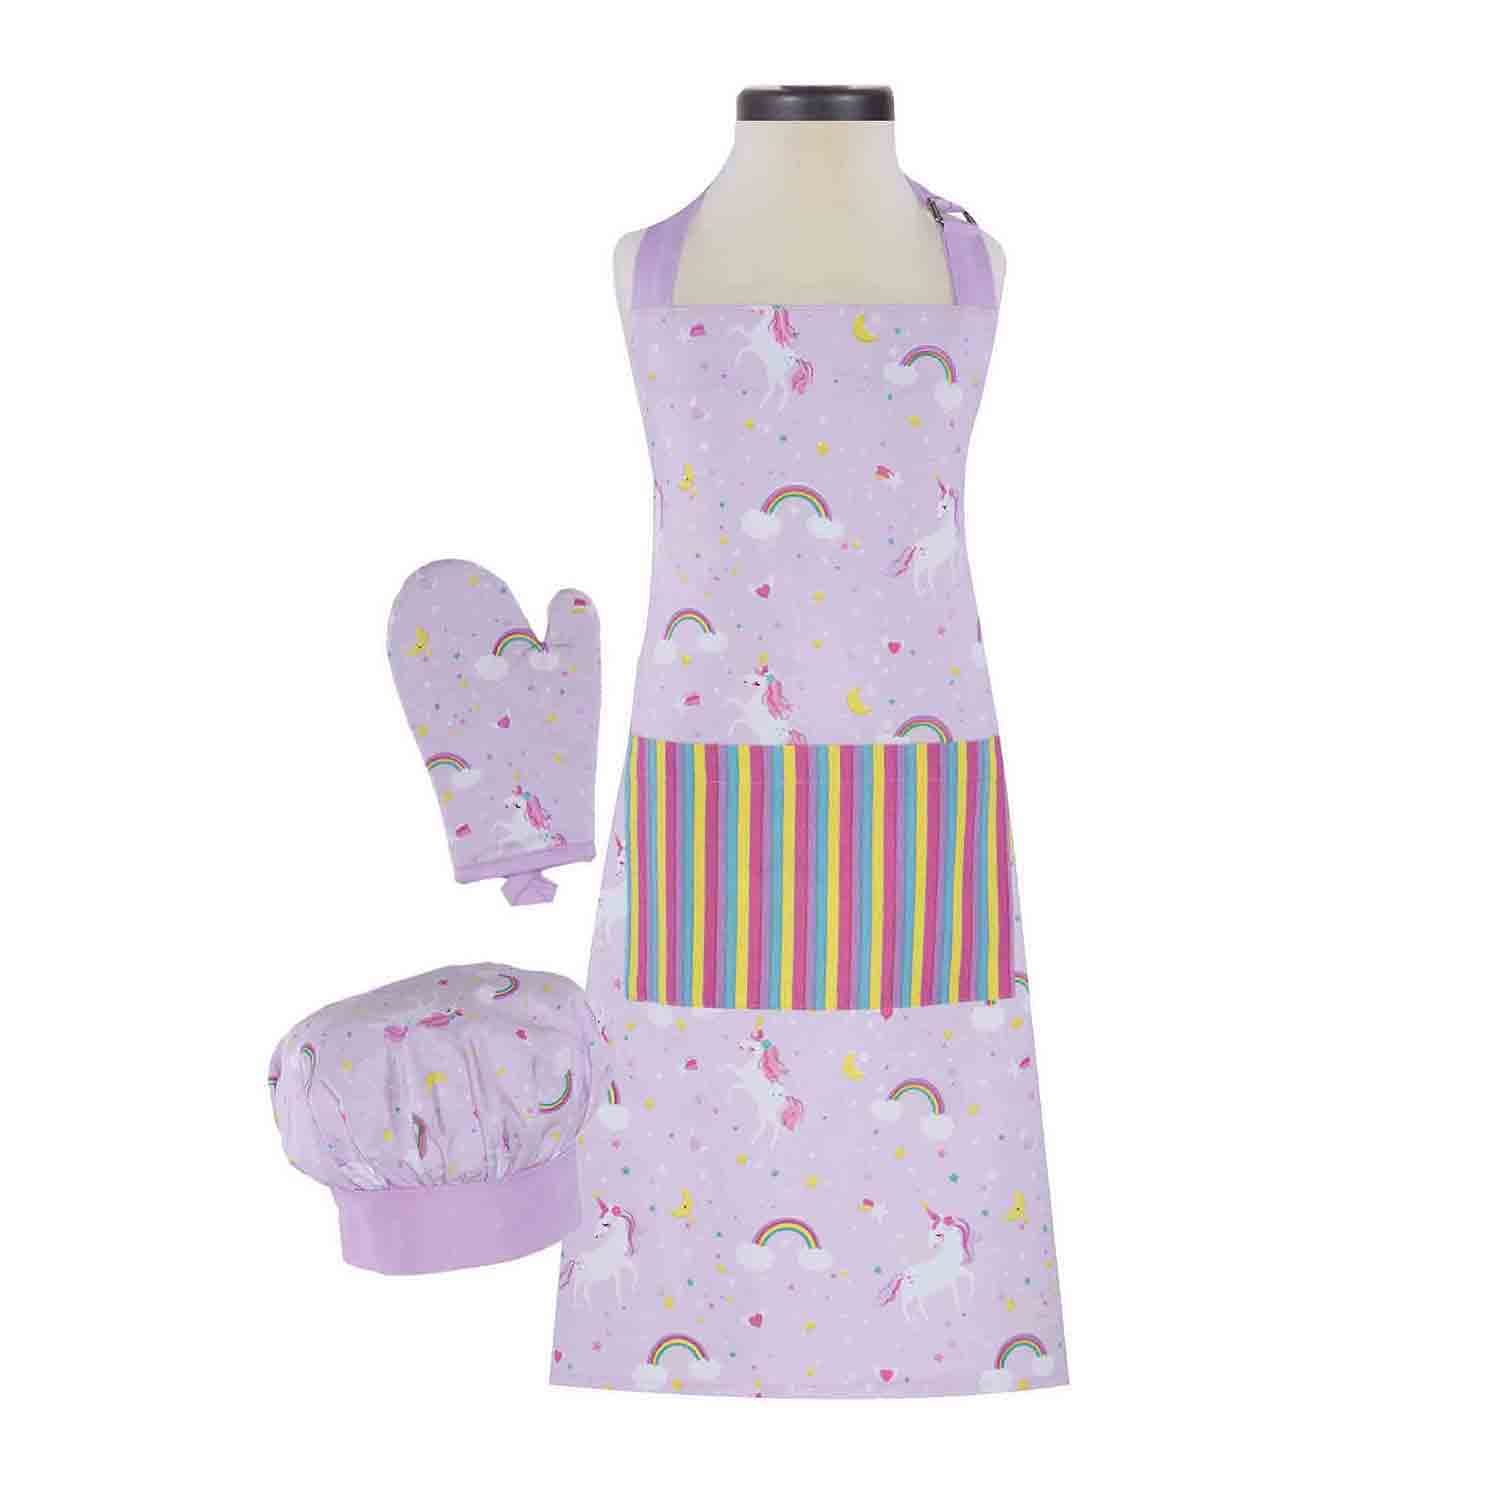 Rainbows & Unicorns Kid's Apron Set